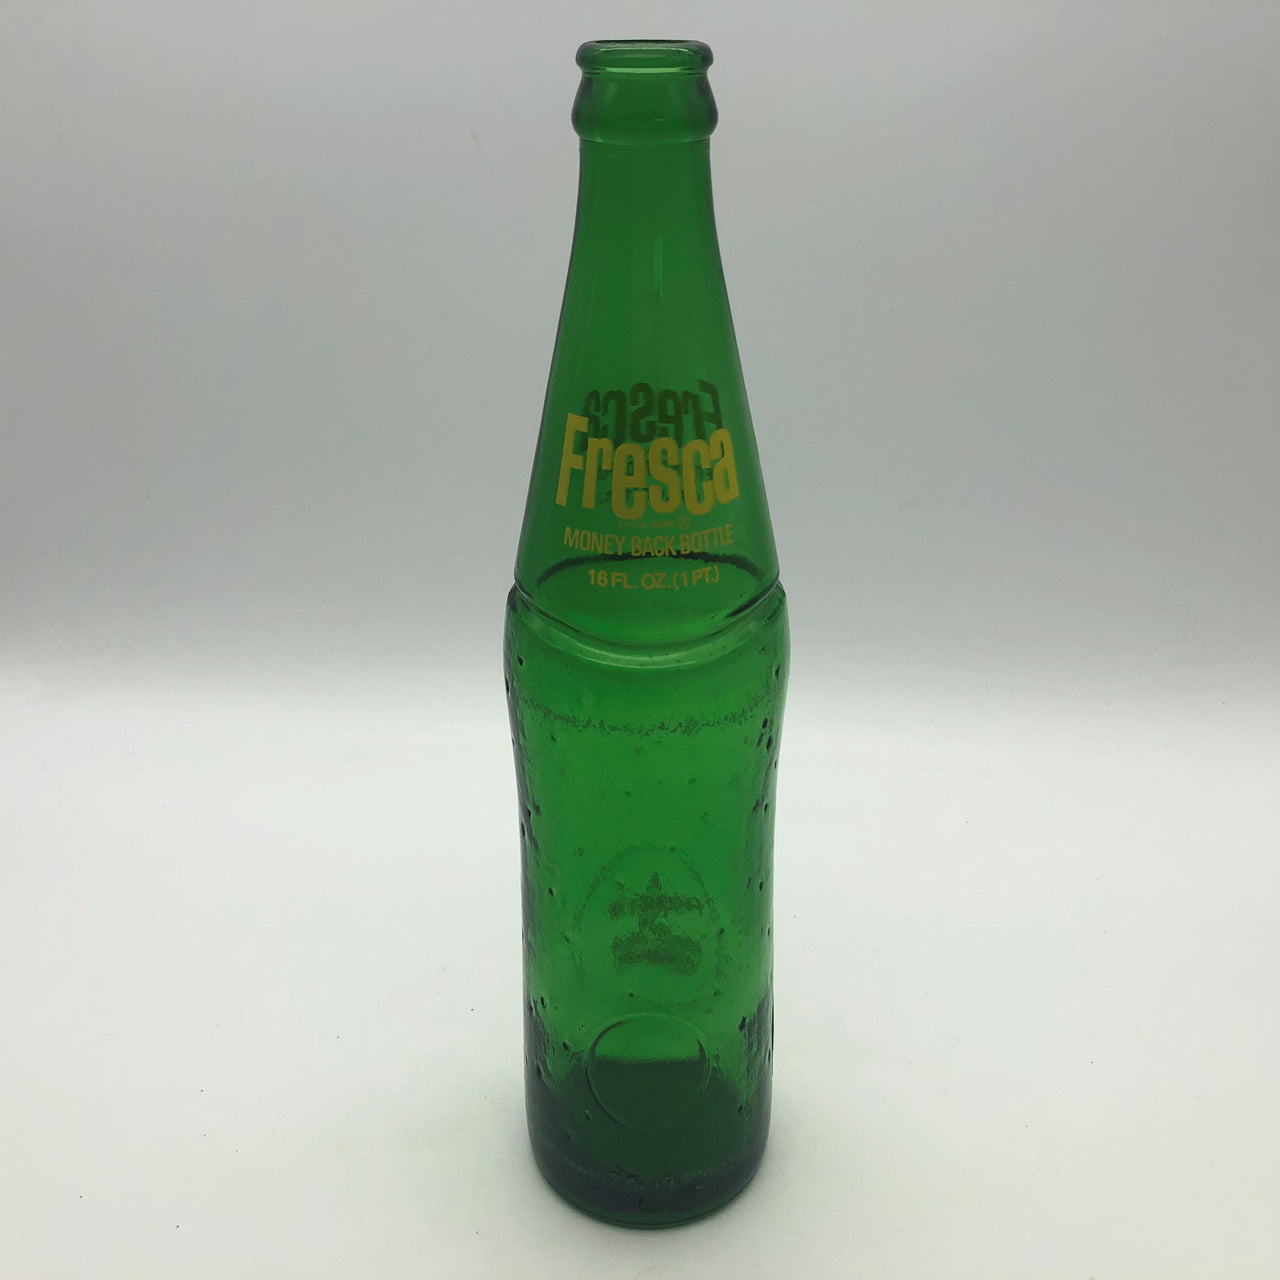 Fresca Soda 16 oz Green Dimpled Glass Bottle Coca-Cola Vintage